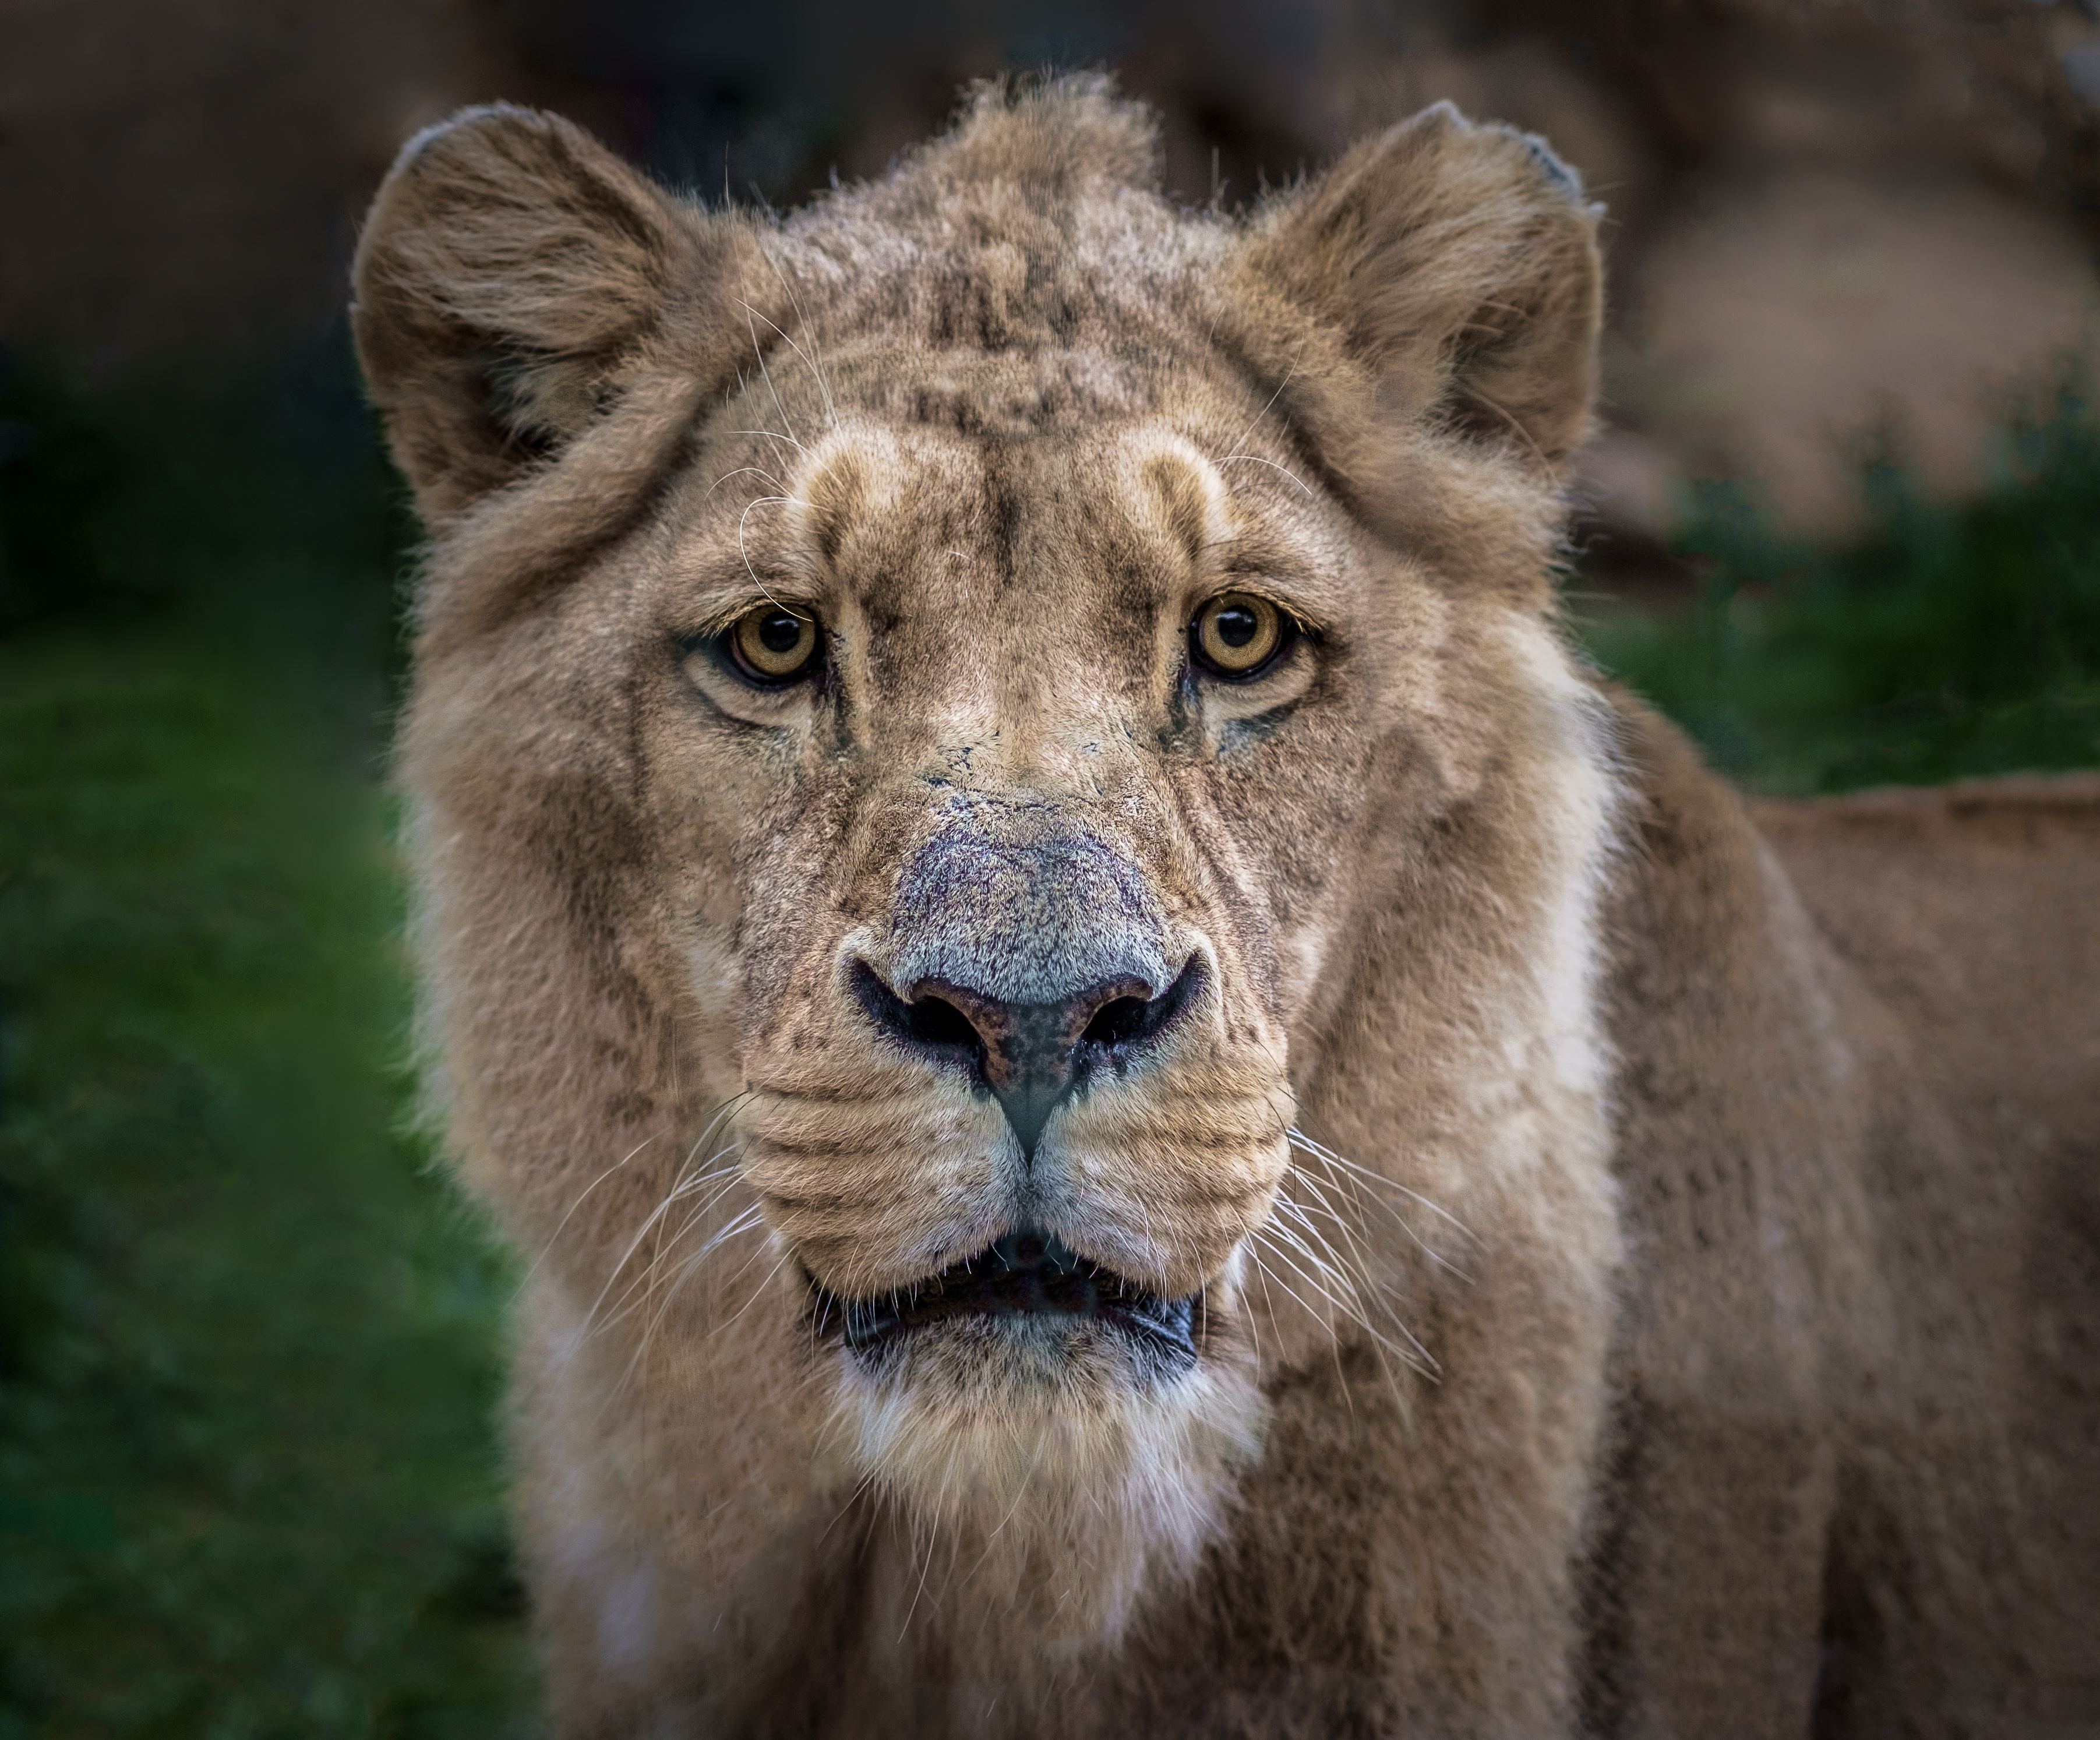 141938 download wallpaper Animals, Lion, Lioness, Muzzle, Predator, Sight, Opinion screensavers and pictures for free